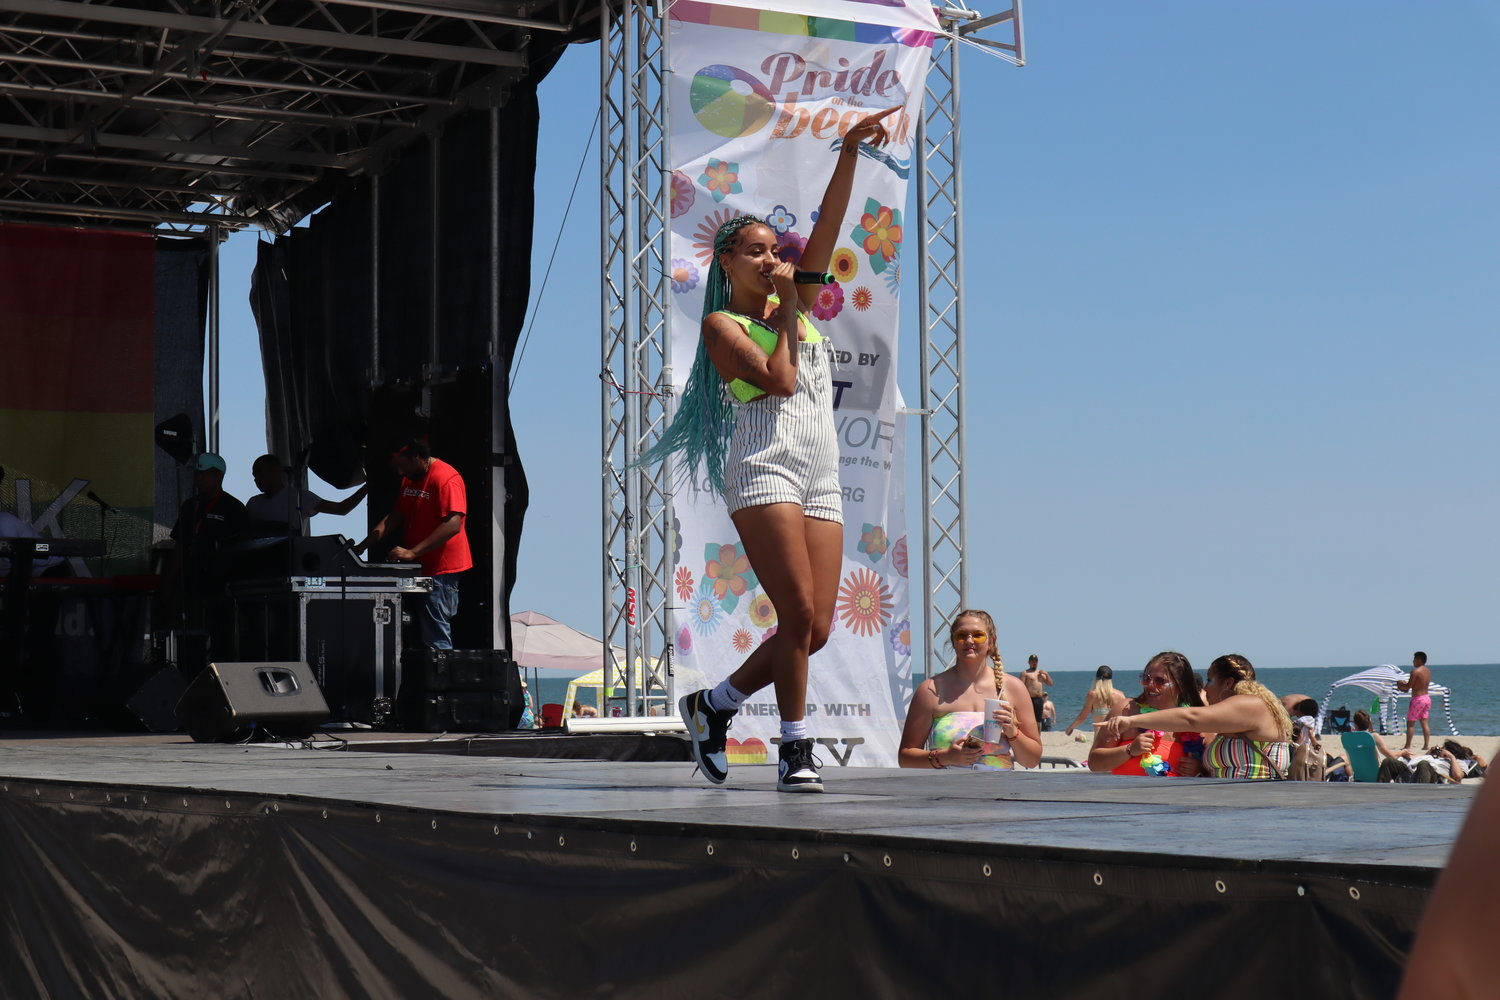 Kayla Rae kicked off the Concert on the Beach.